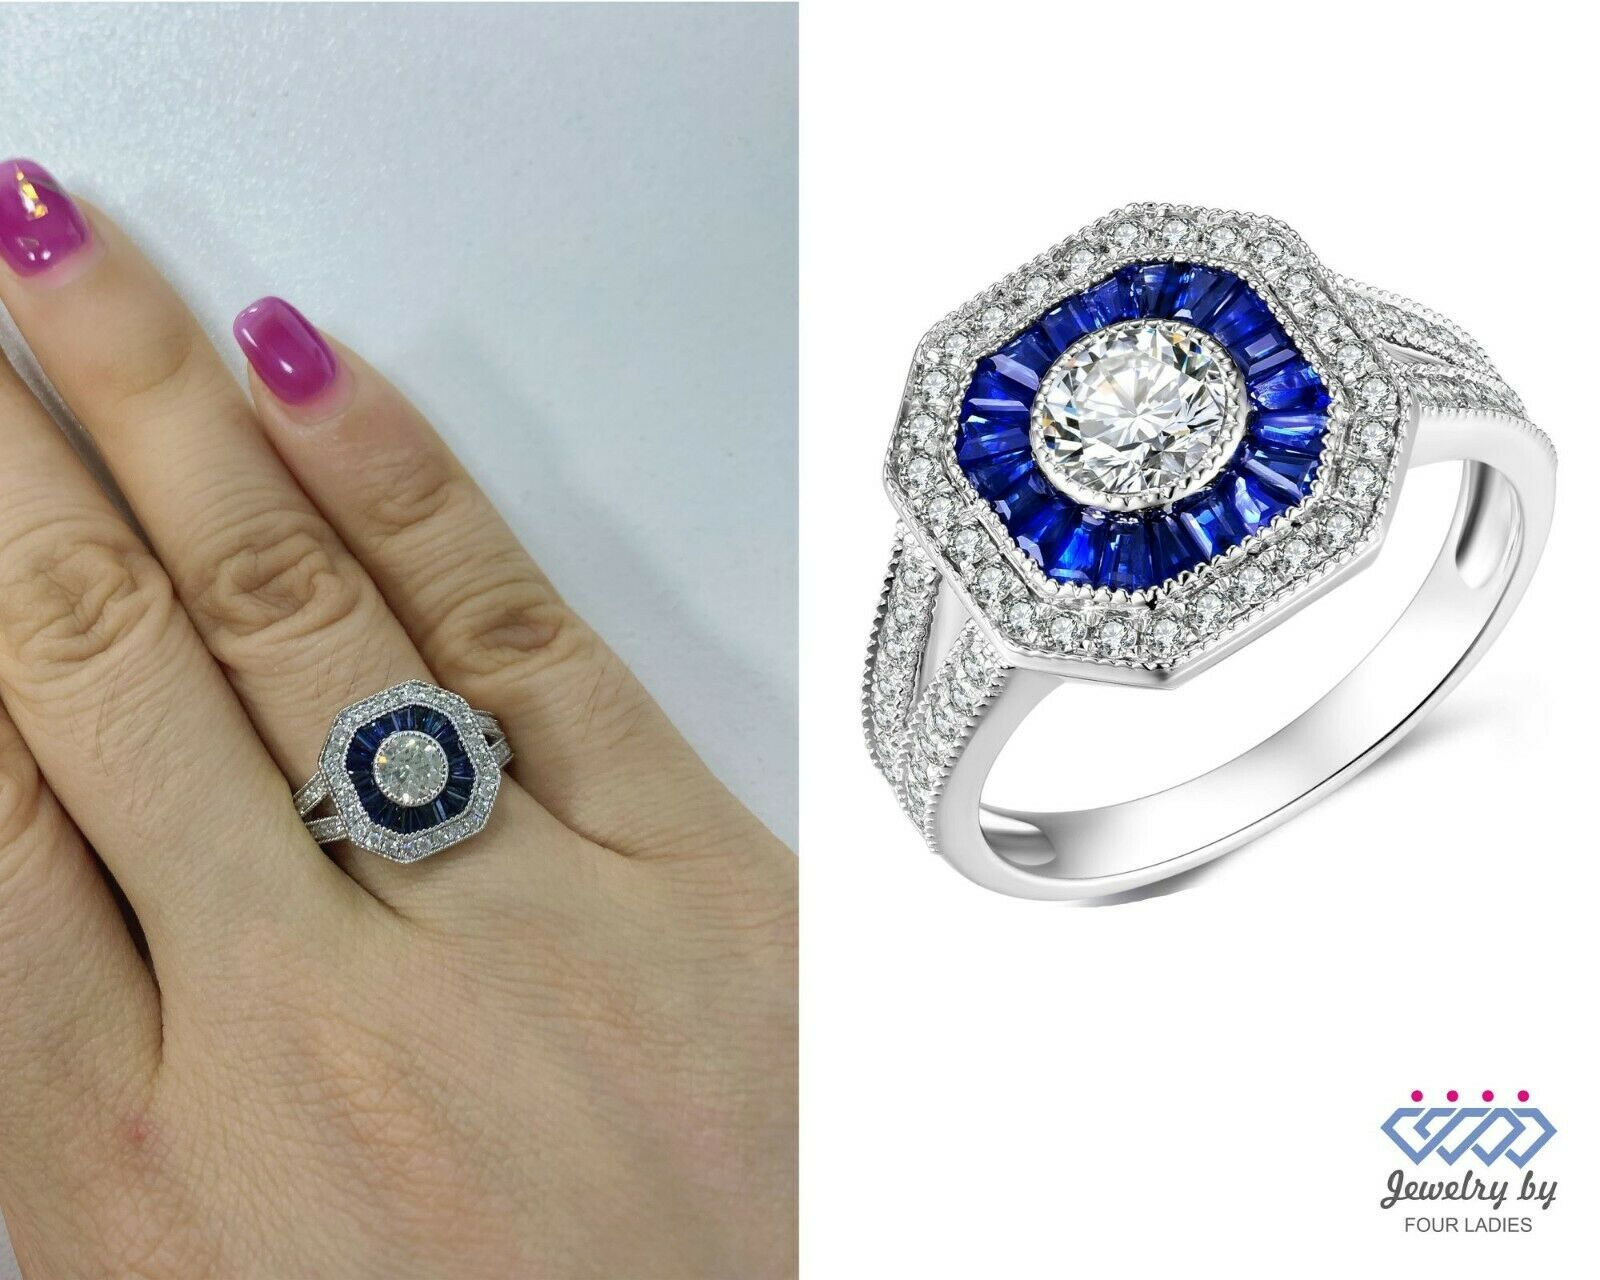 Primary image for 0.69 Carat Blue Sapphire Gemstone Diamond Bridal Ring Jewelry 14K White Gold